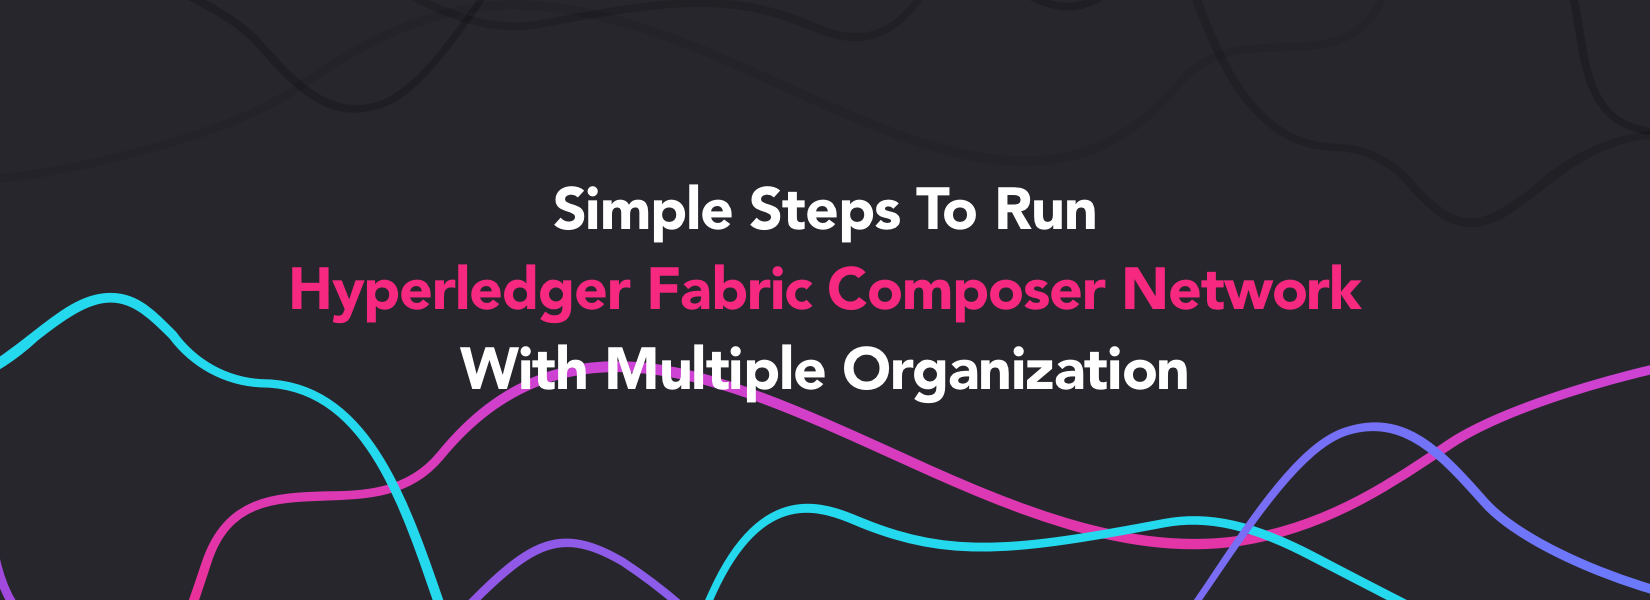 Simple Steps To Run Hyperledger Fabric Composer Network With Multiple Organization